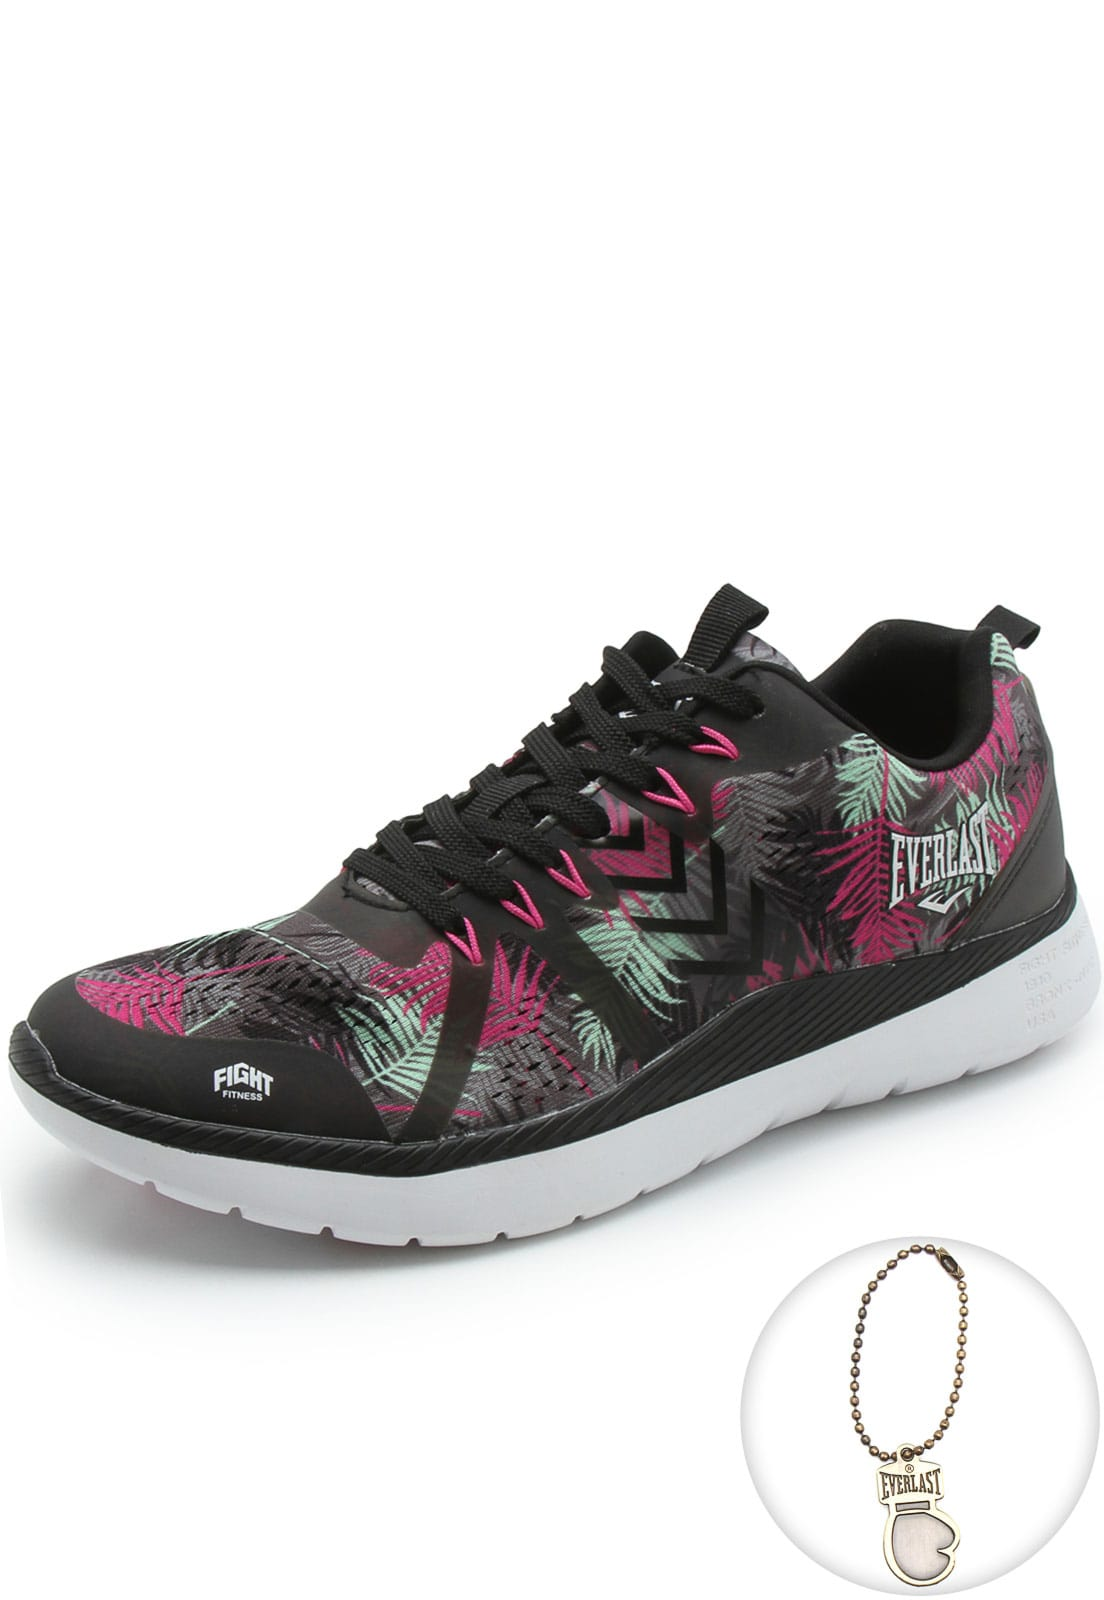 Tênis Everlast Haze Low Preto Floral